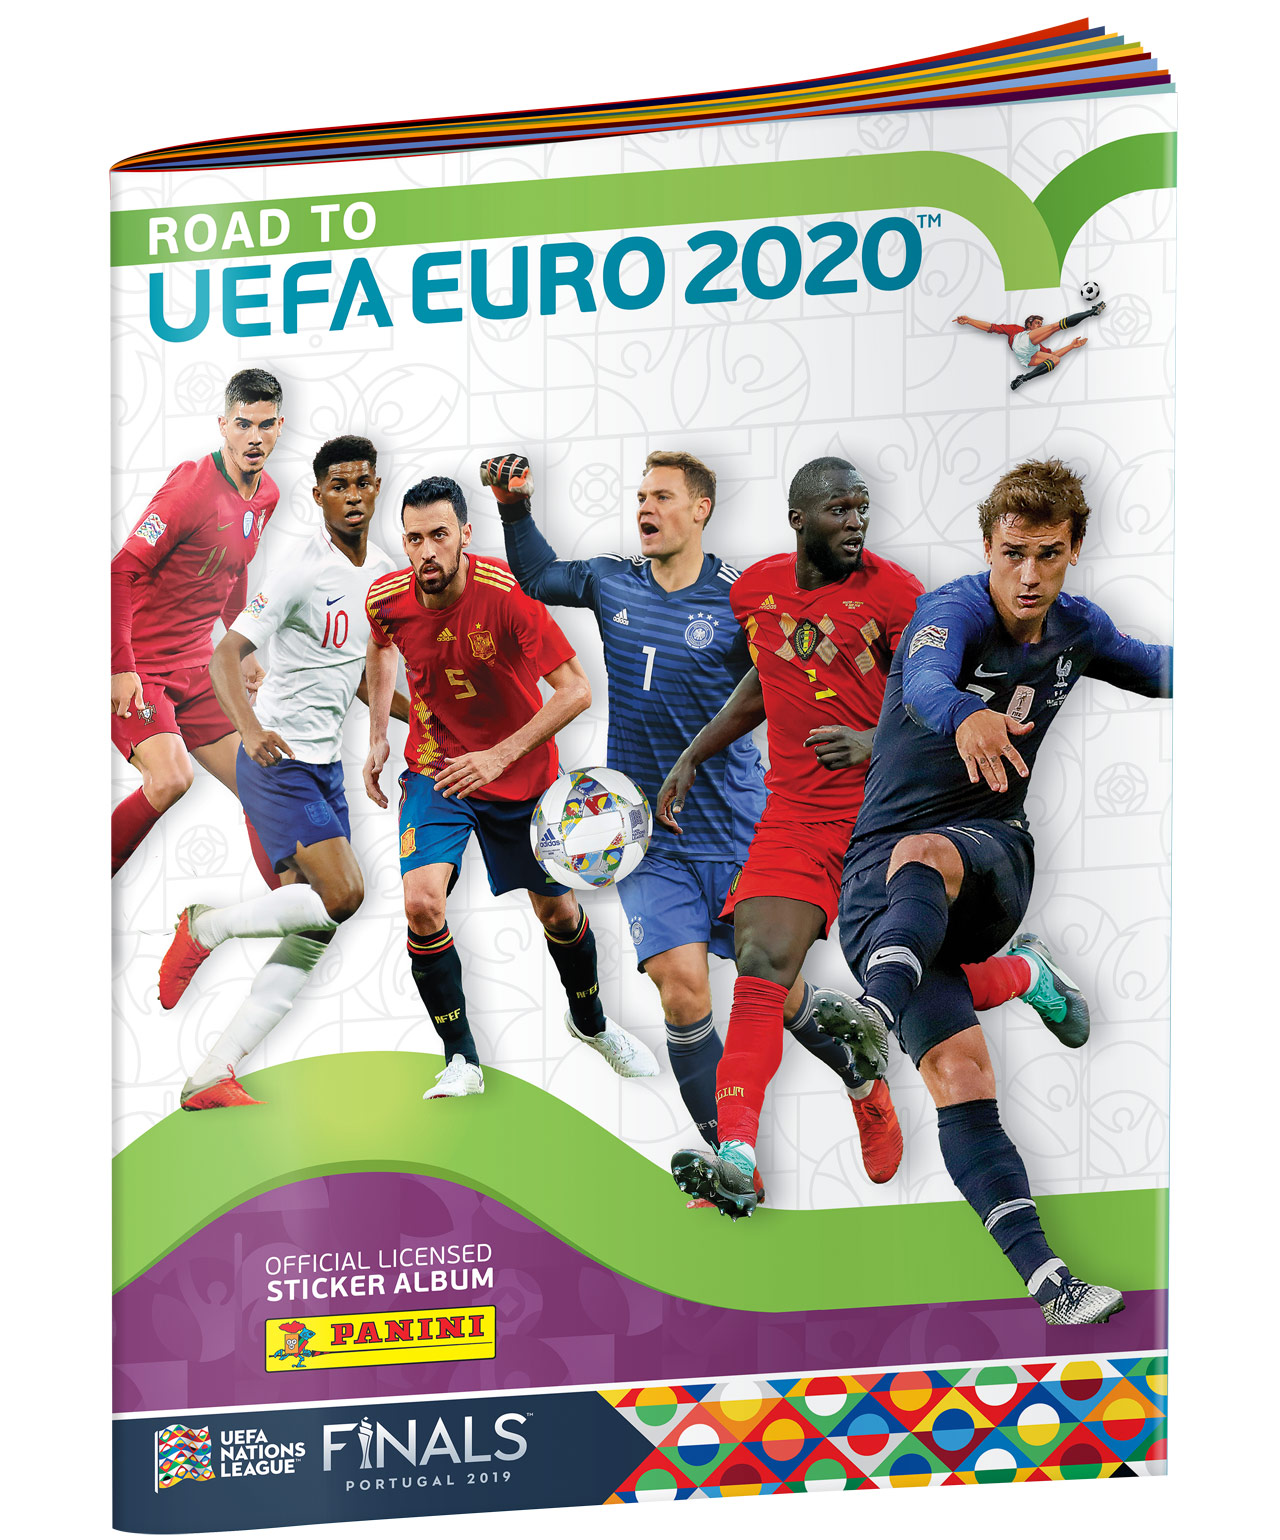 6532_roadtoeuro2020_album.jpg